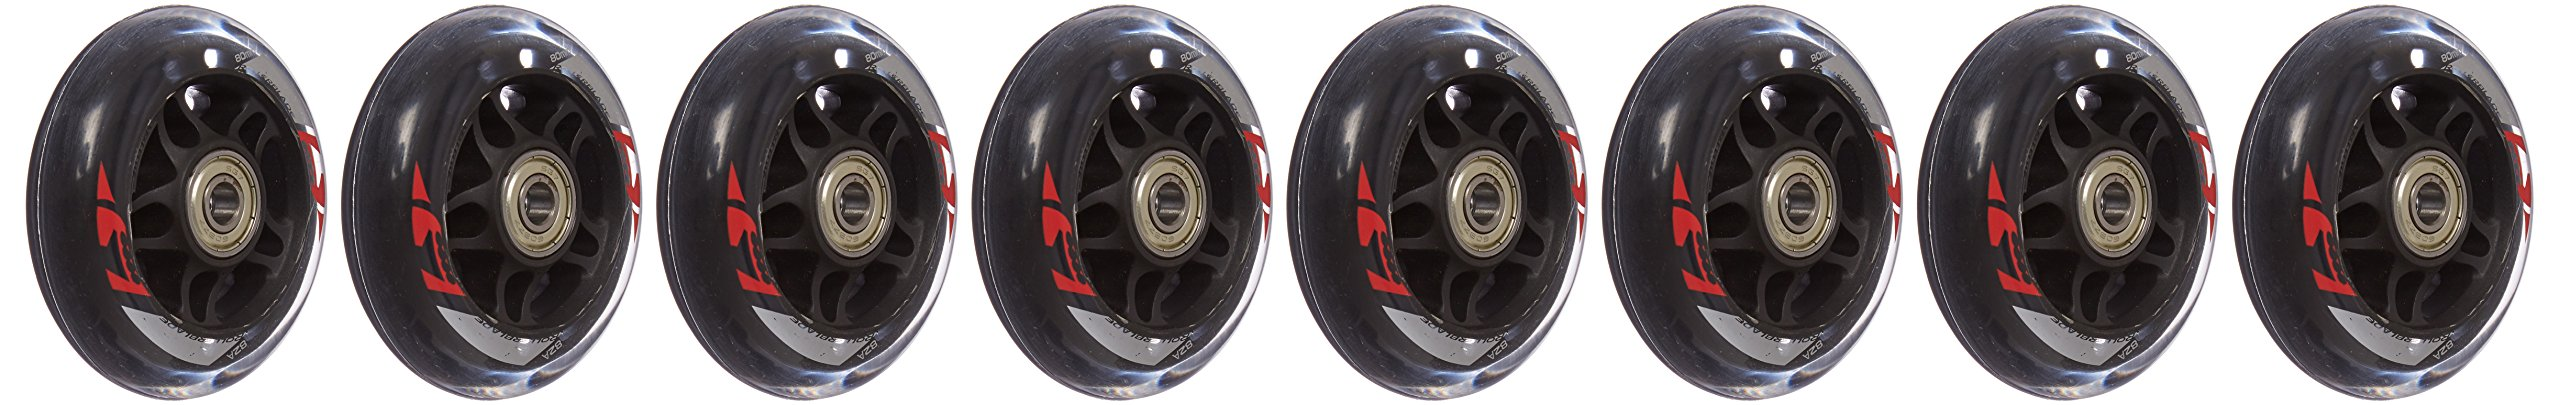 Rollerblade ABEC 7 Skate Bearings Complete Wheel Kit, 80mm/82A, Clear by Rollerblade